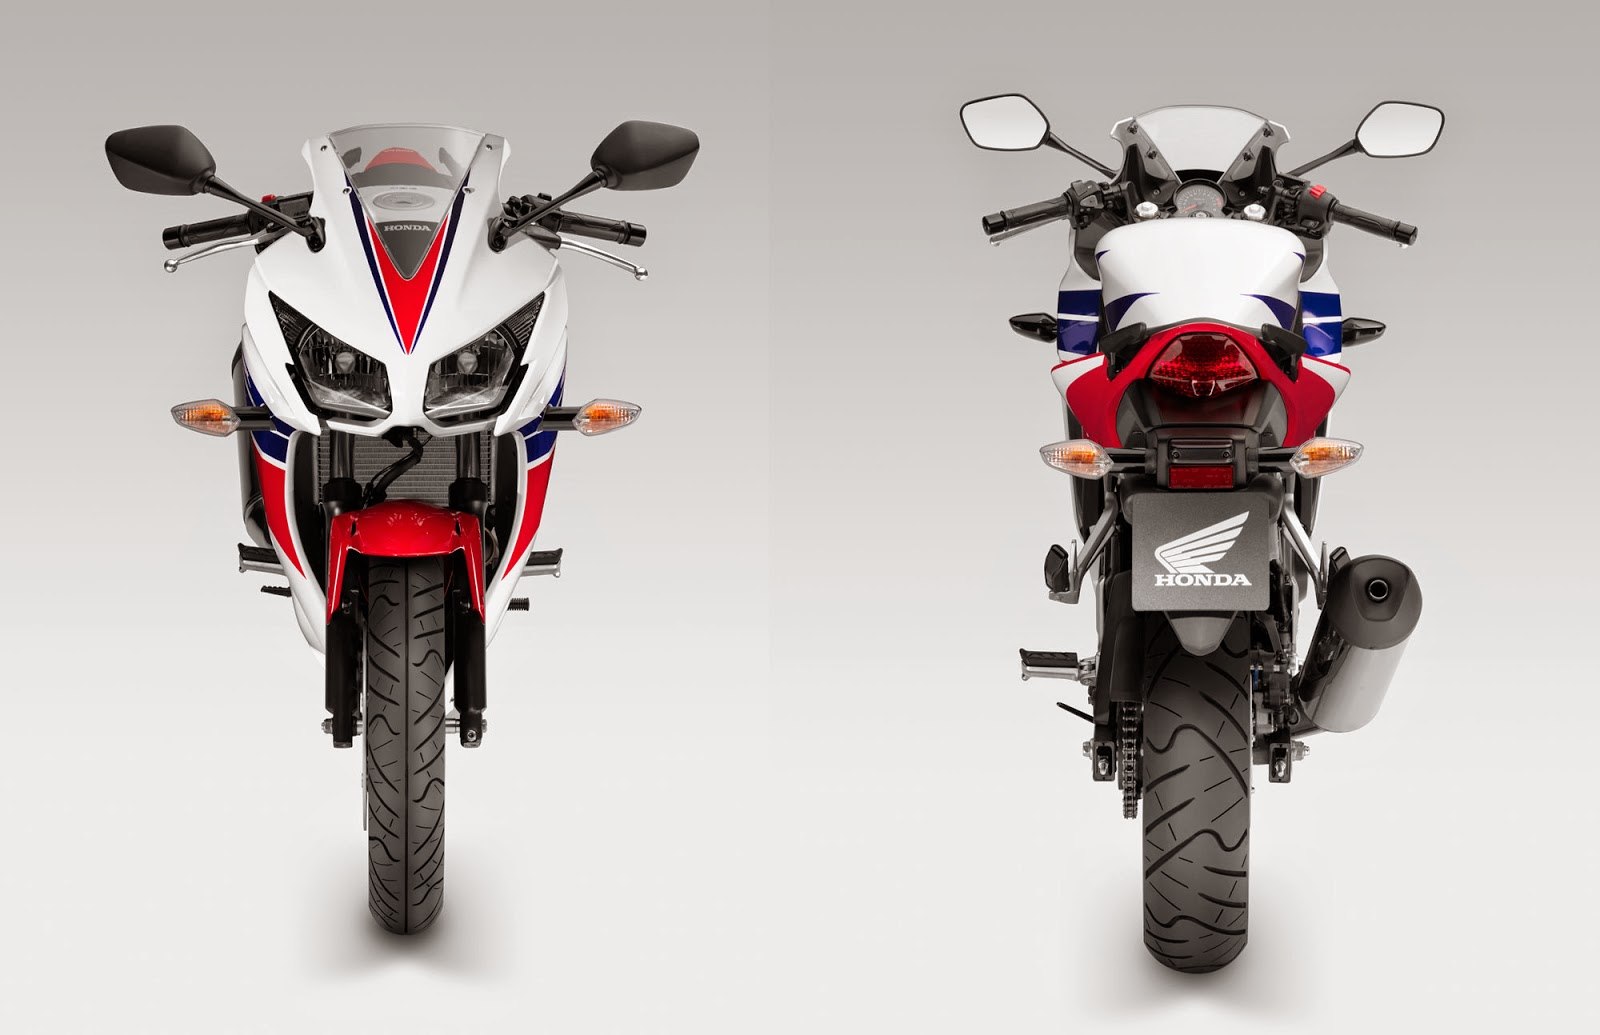 new car launches jan 2015Read Here Honda CBR 300R UpcomingFeaturesPriceReviewetc Now